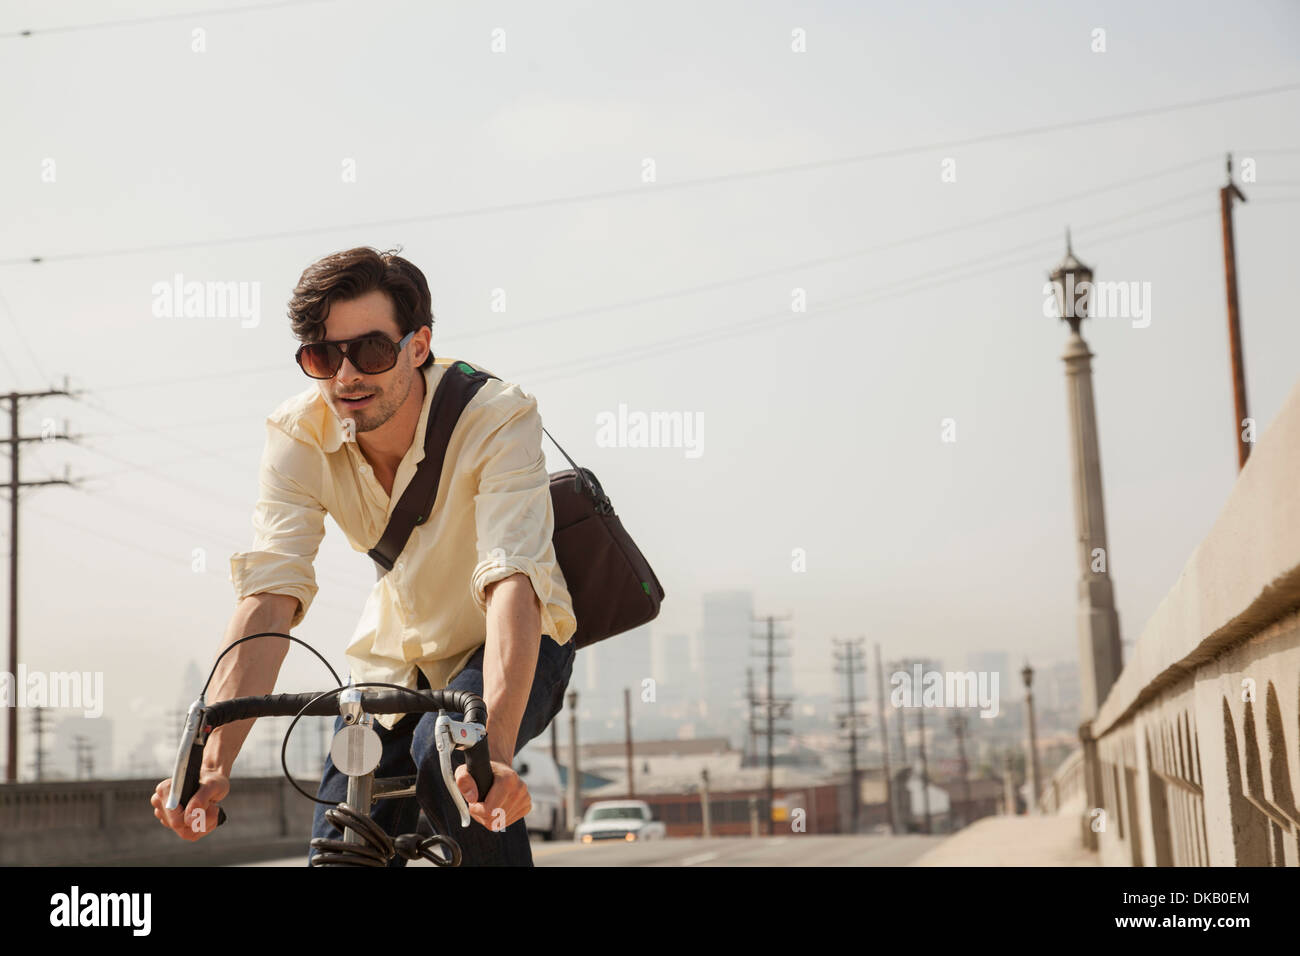 Man cycling on road, Los Angeles, California, USA Stock Photo